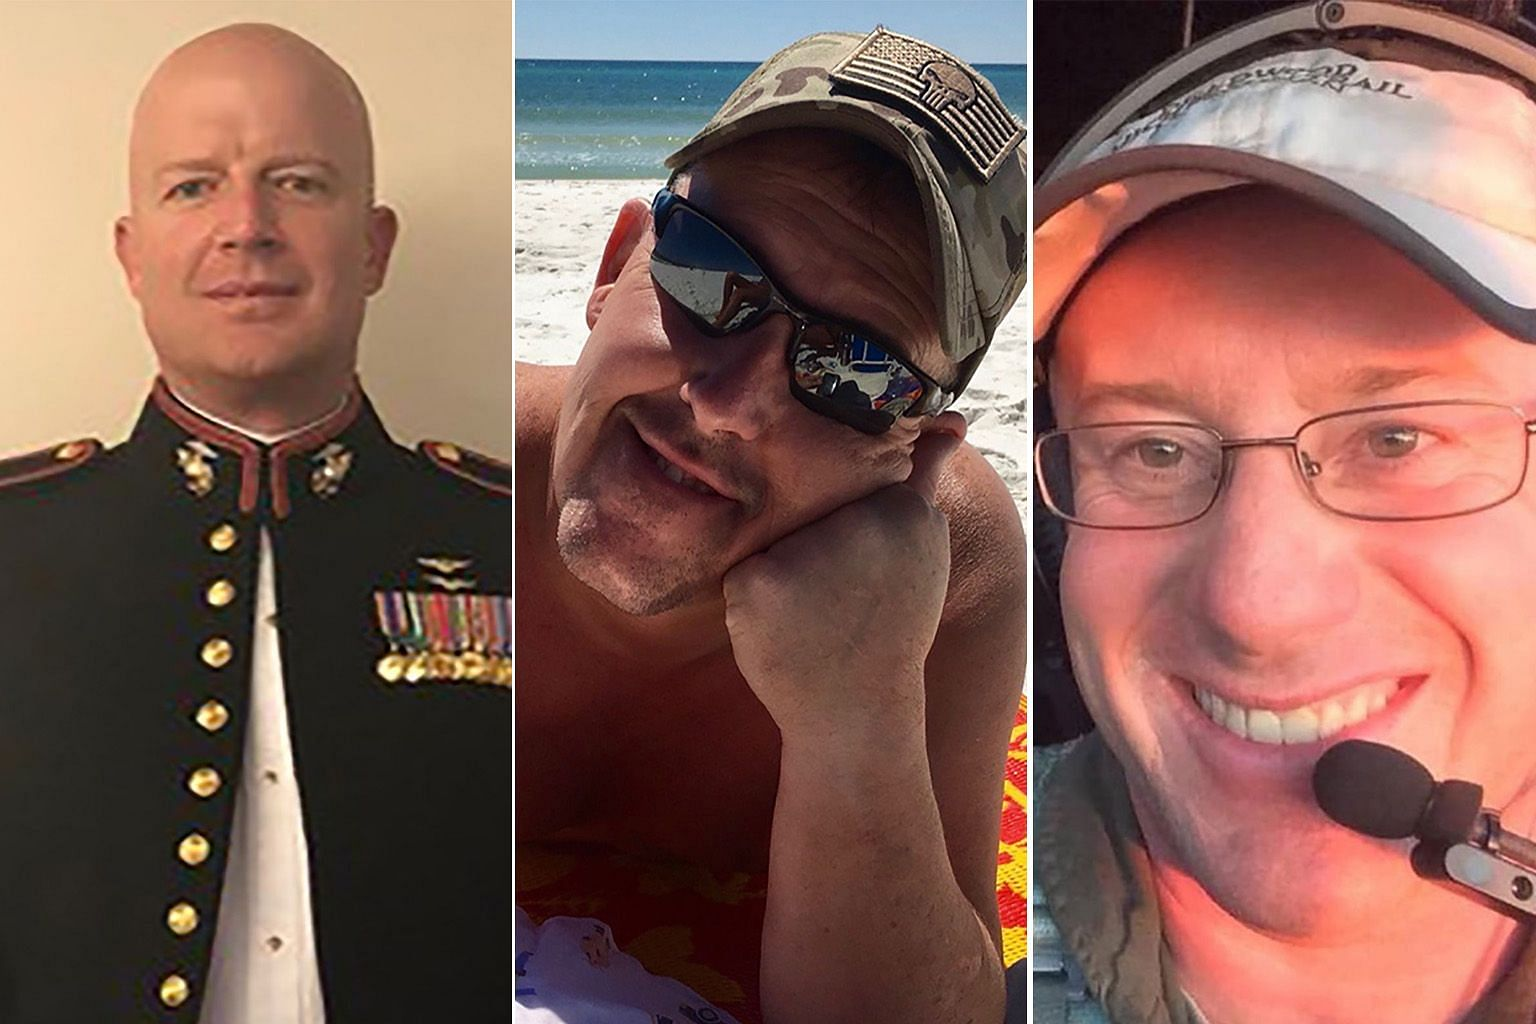 The three US firefighters who died on Thursday were (from top) First Officer Paul Hudson, Flight Engineer Rick DeMorgan Jr, and Captain Ian McBeth. All were former US military members with extensive flight experience.